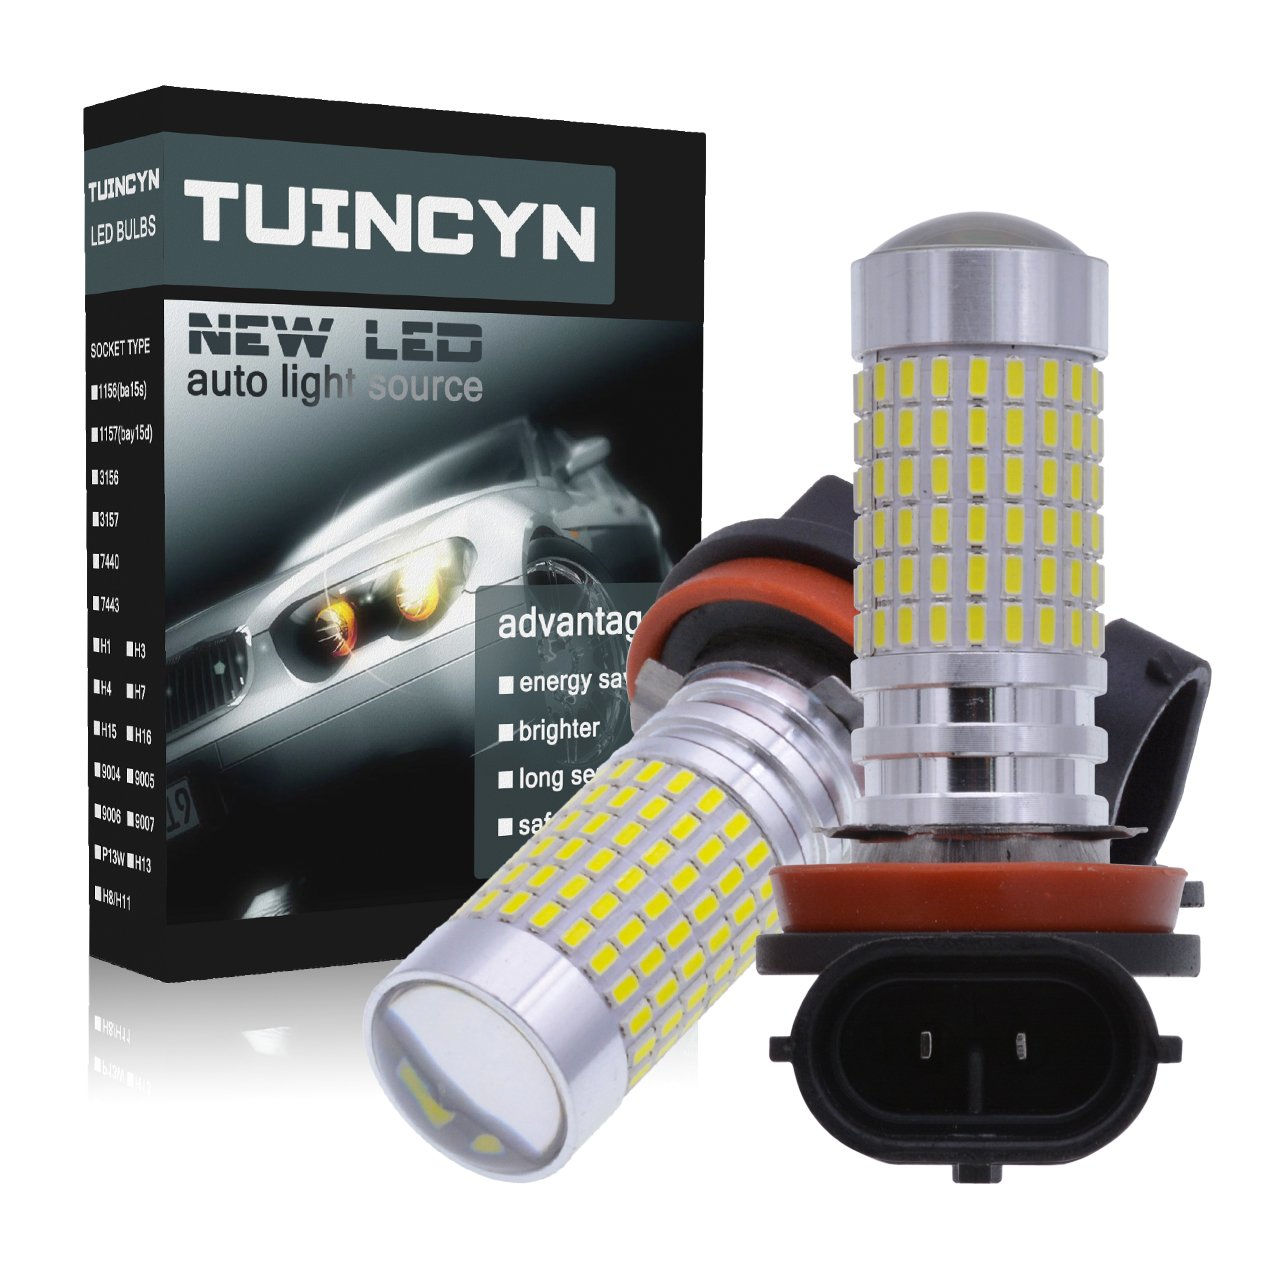 TUINCYN H7 1500 Lumens 3014 144 SMD LED Bulbs Super Bright Xenon White Automotive Exterior Fog Lights Daytime Running Lights with Lens Pack of 2